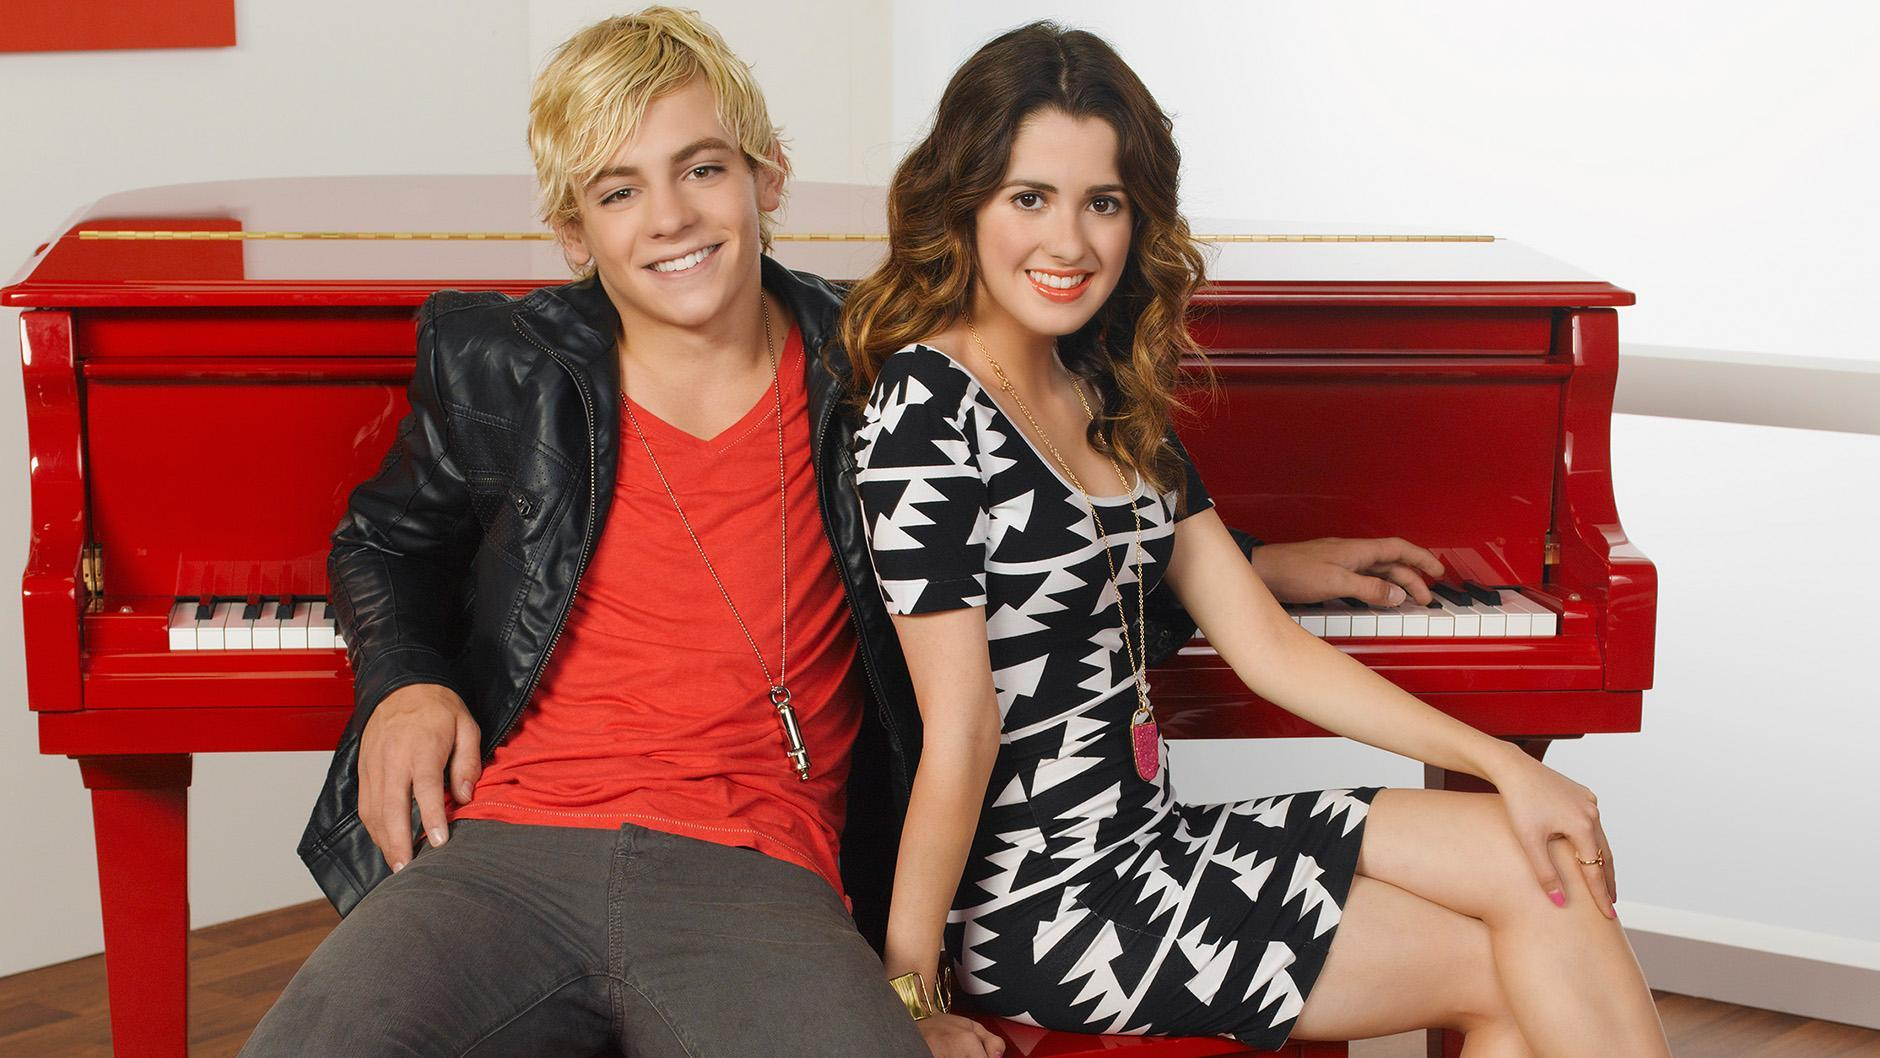 austin & ally page's Photo